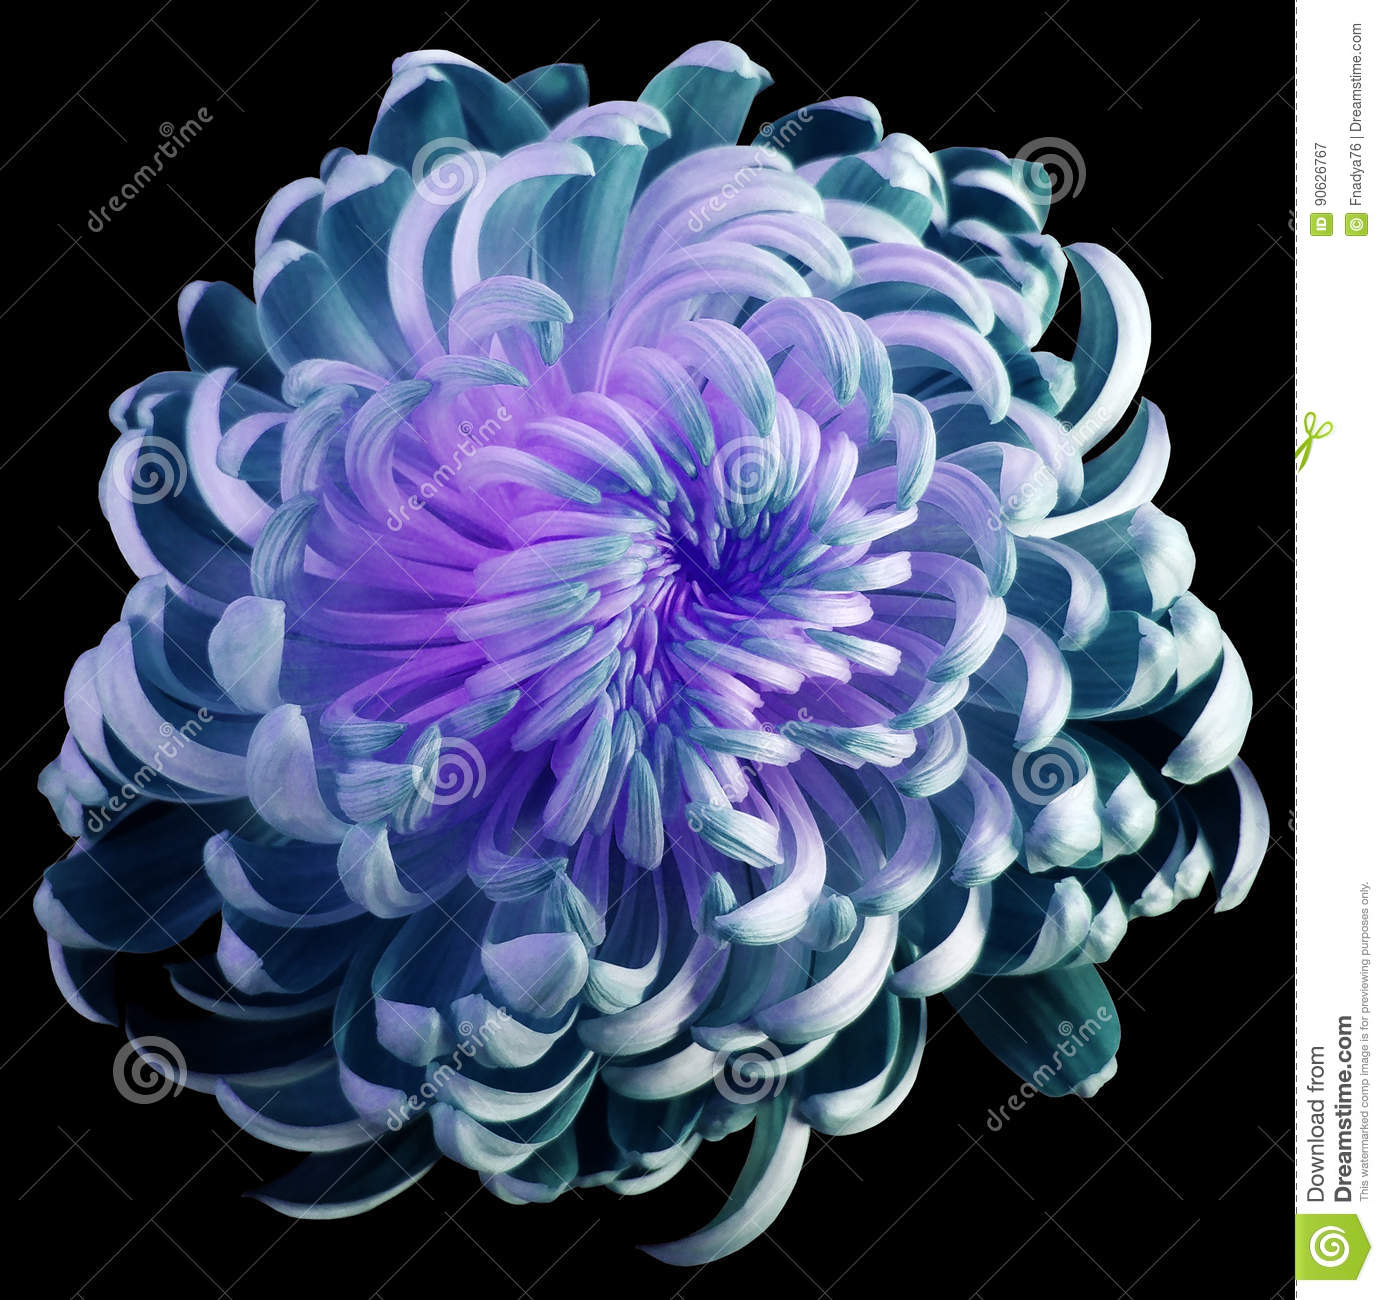 flower Turquoise-violet chrysanthemum. Motley garden flower. black isolated background with clipping path no shadows. Closeup.